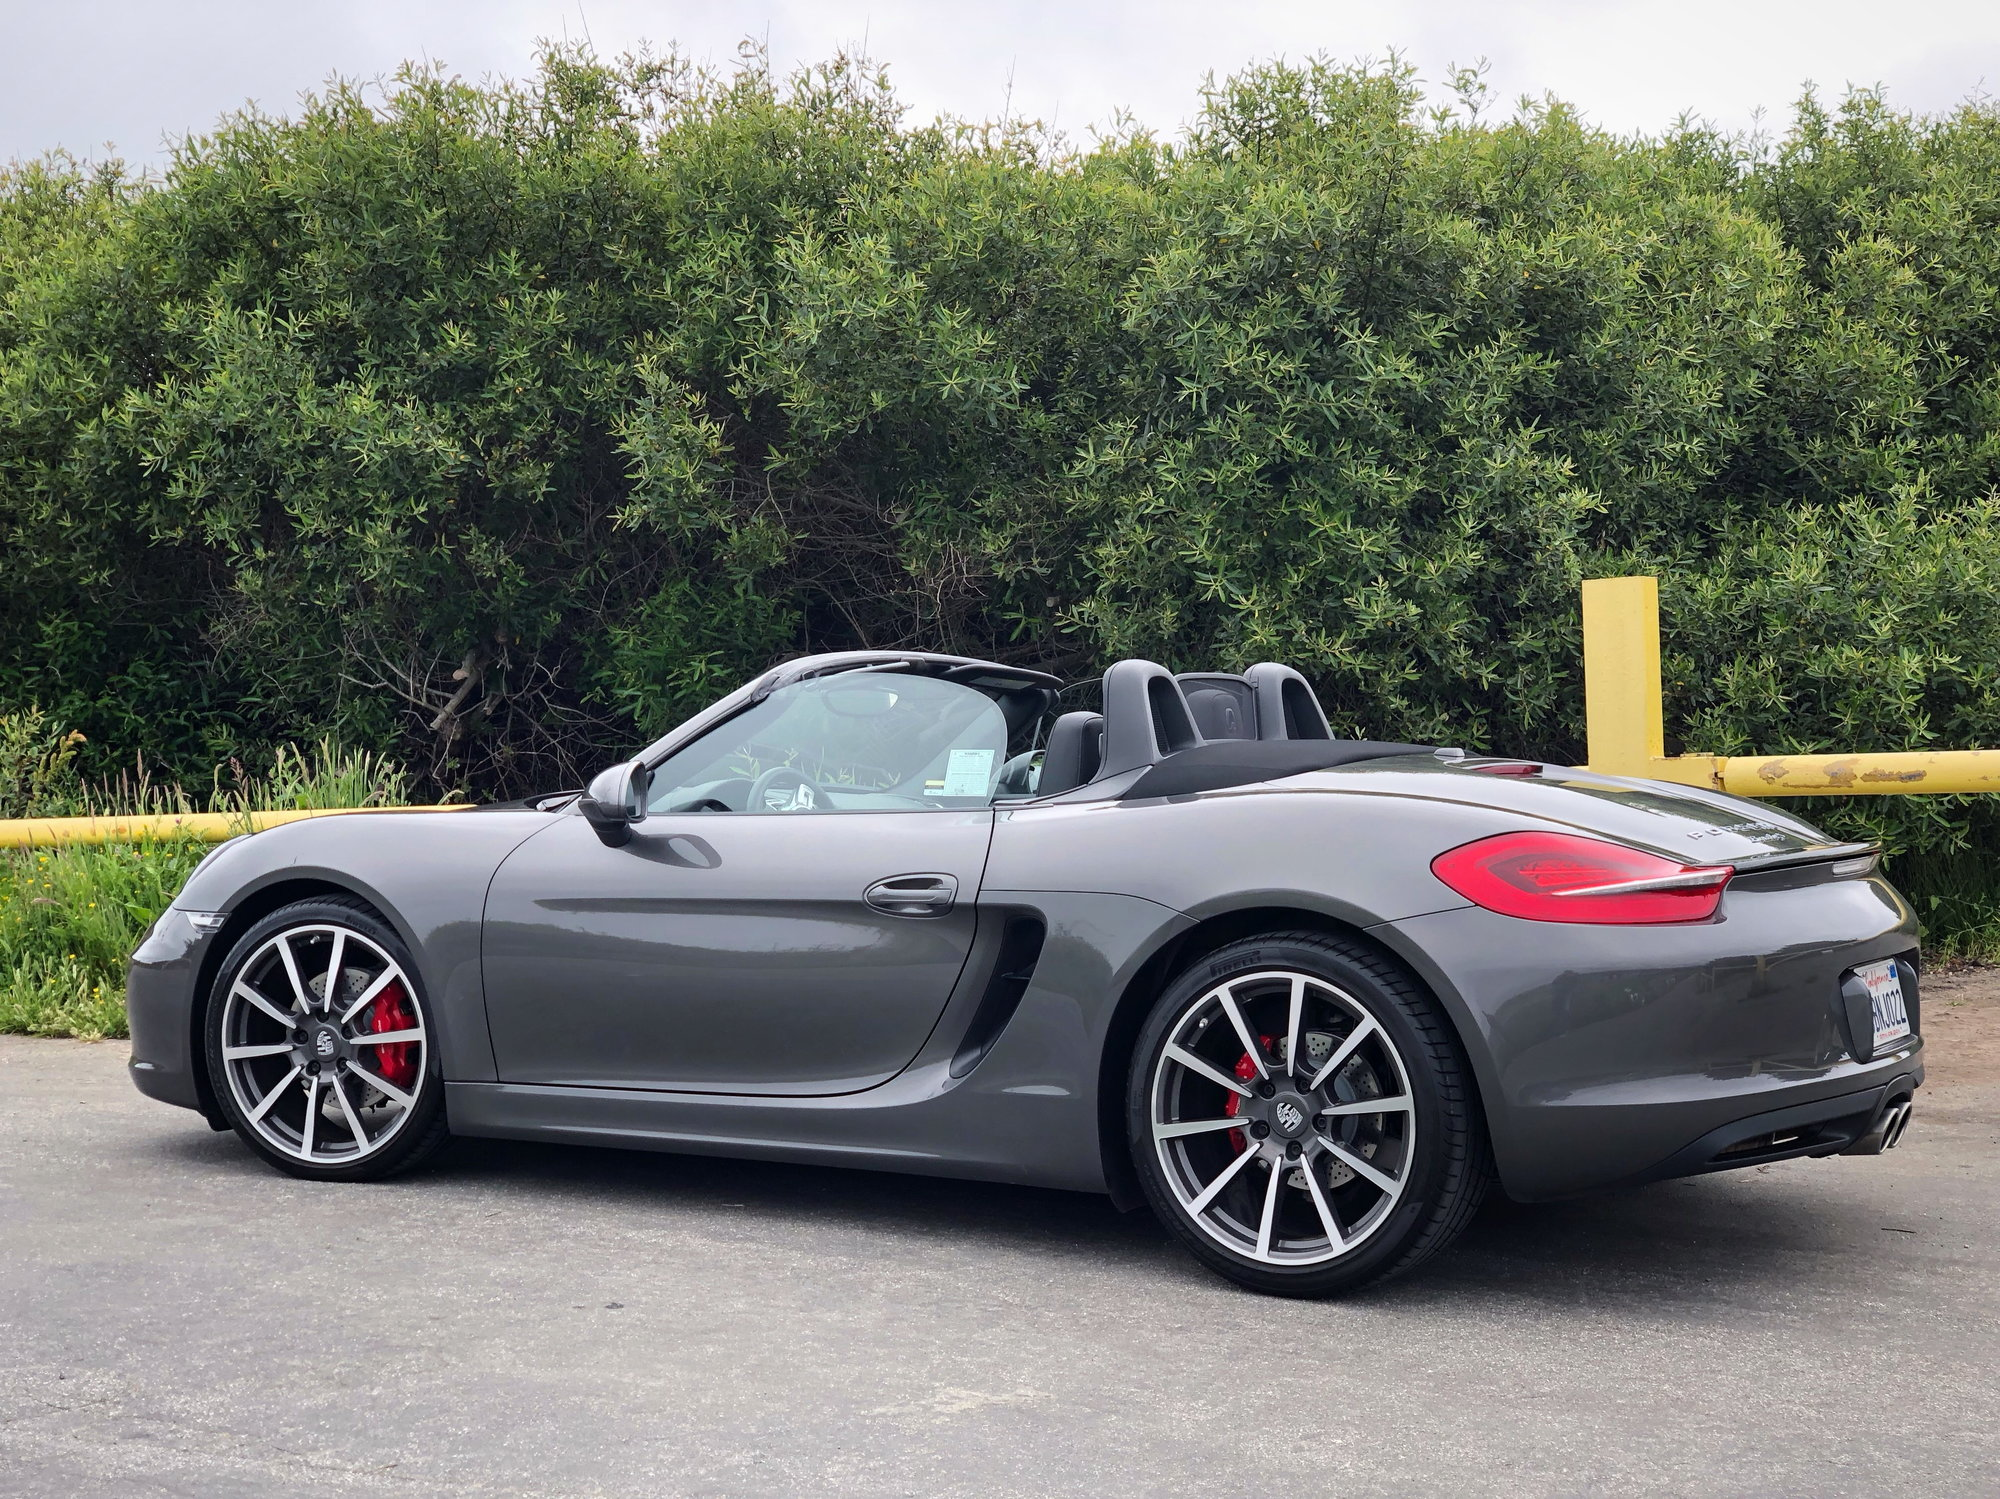 Is Your Cayman Or Boxster Your Daily Driver? If Not, What